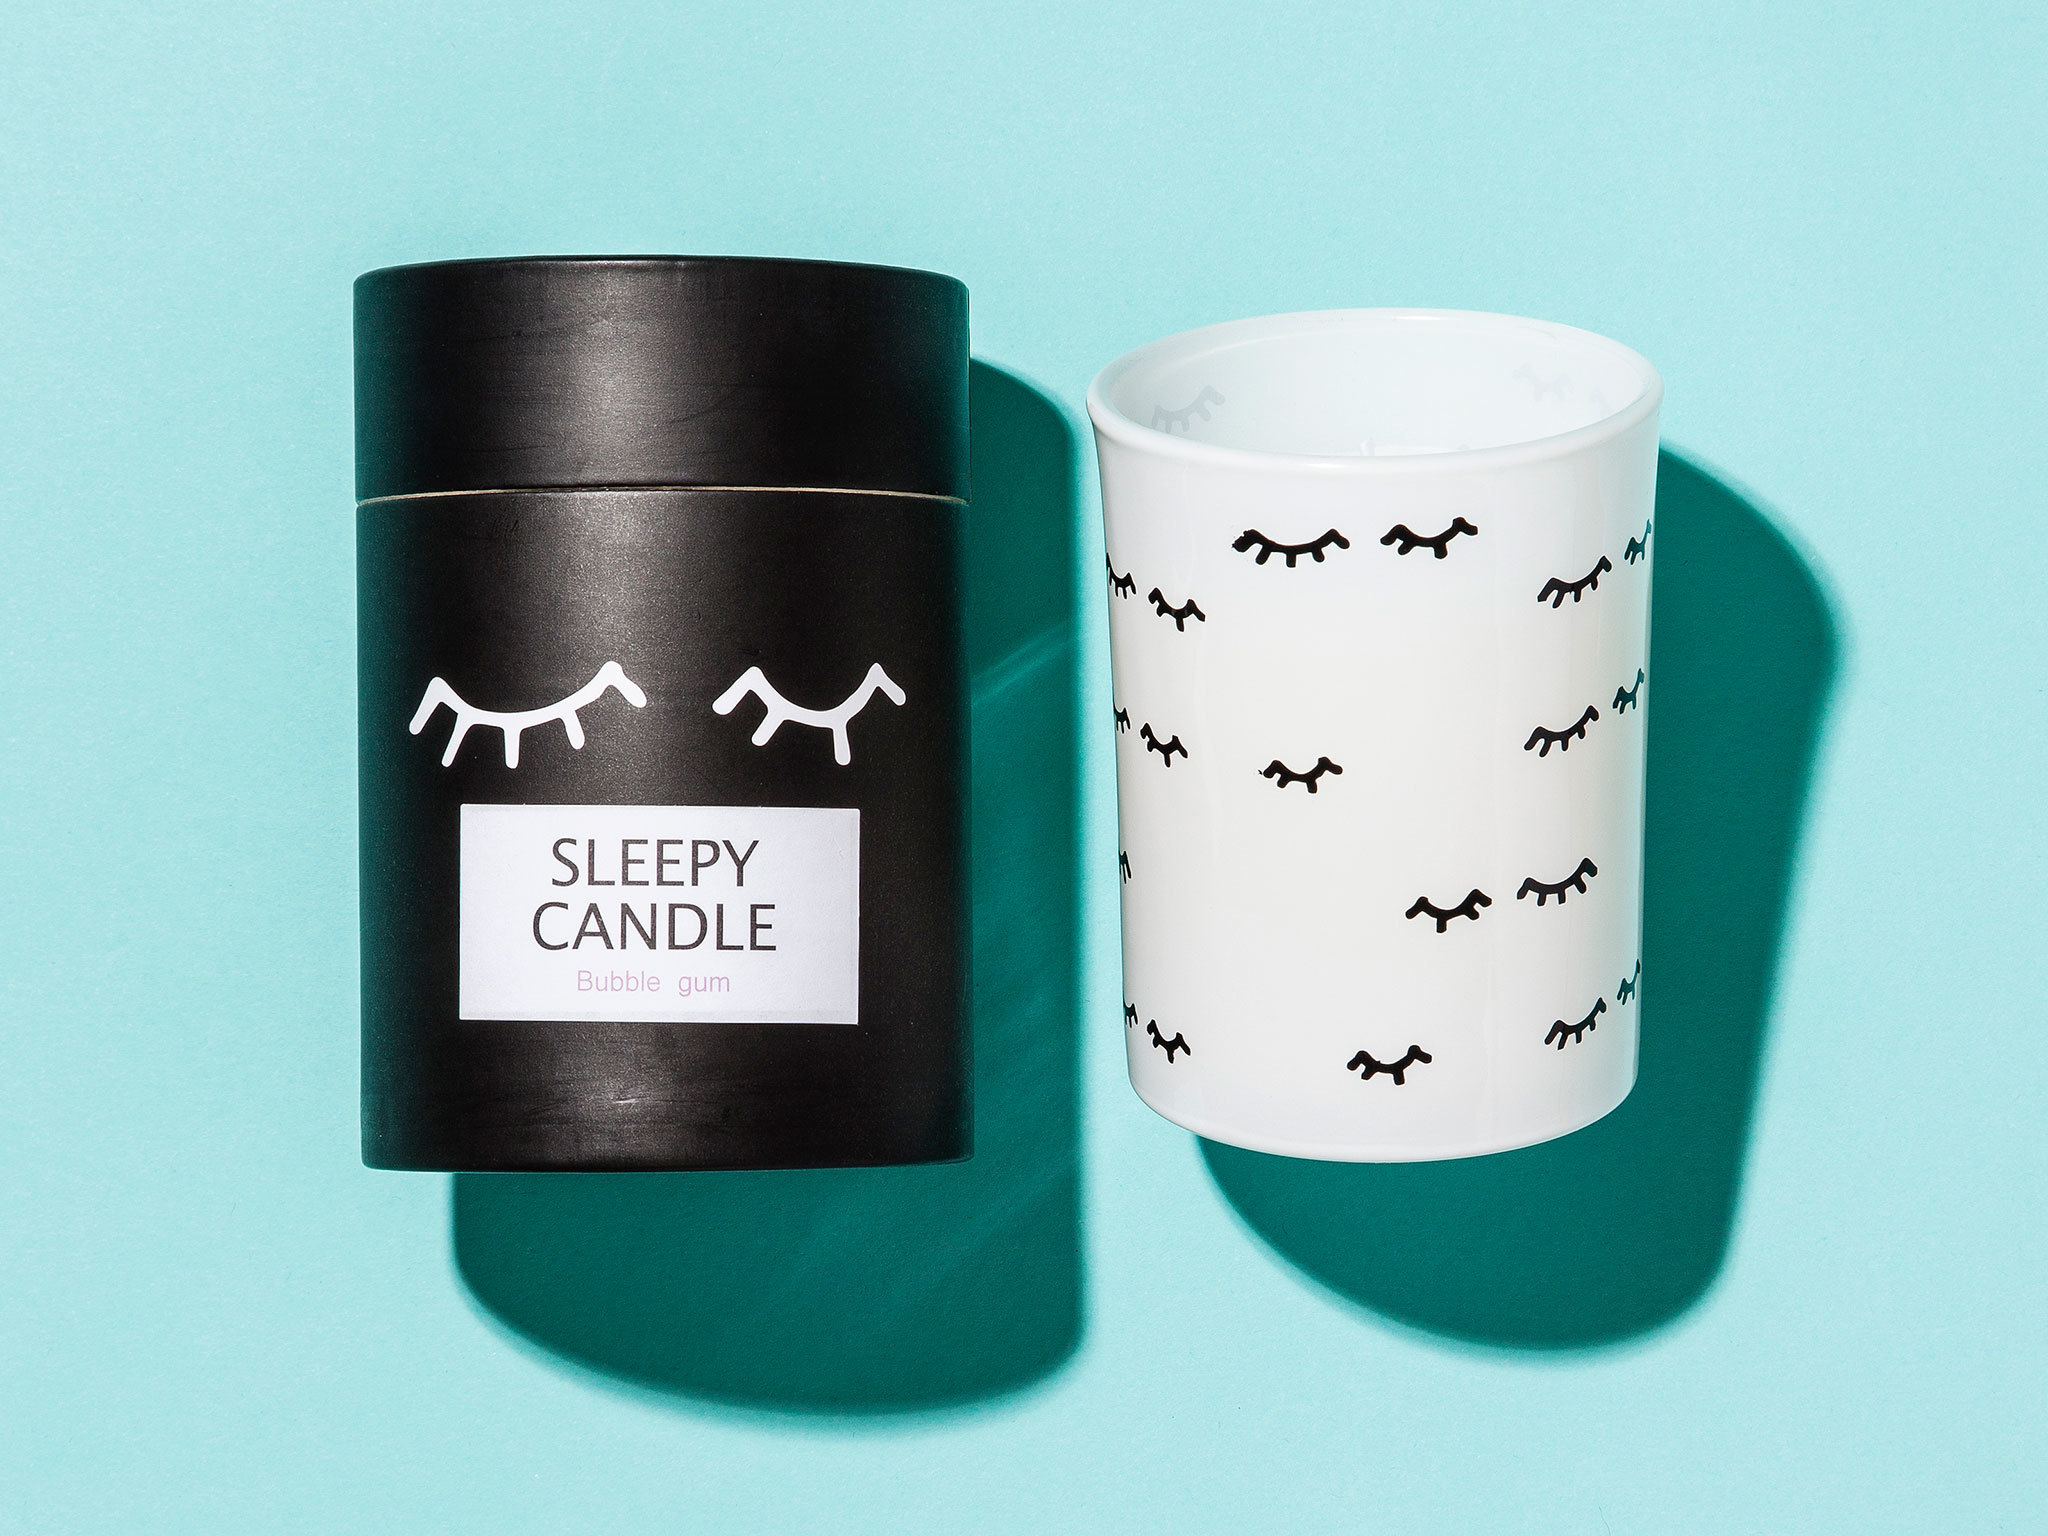 Anna sleepy candle by Monki